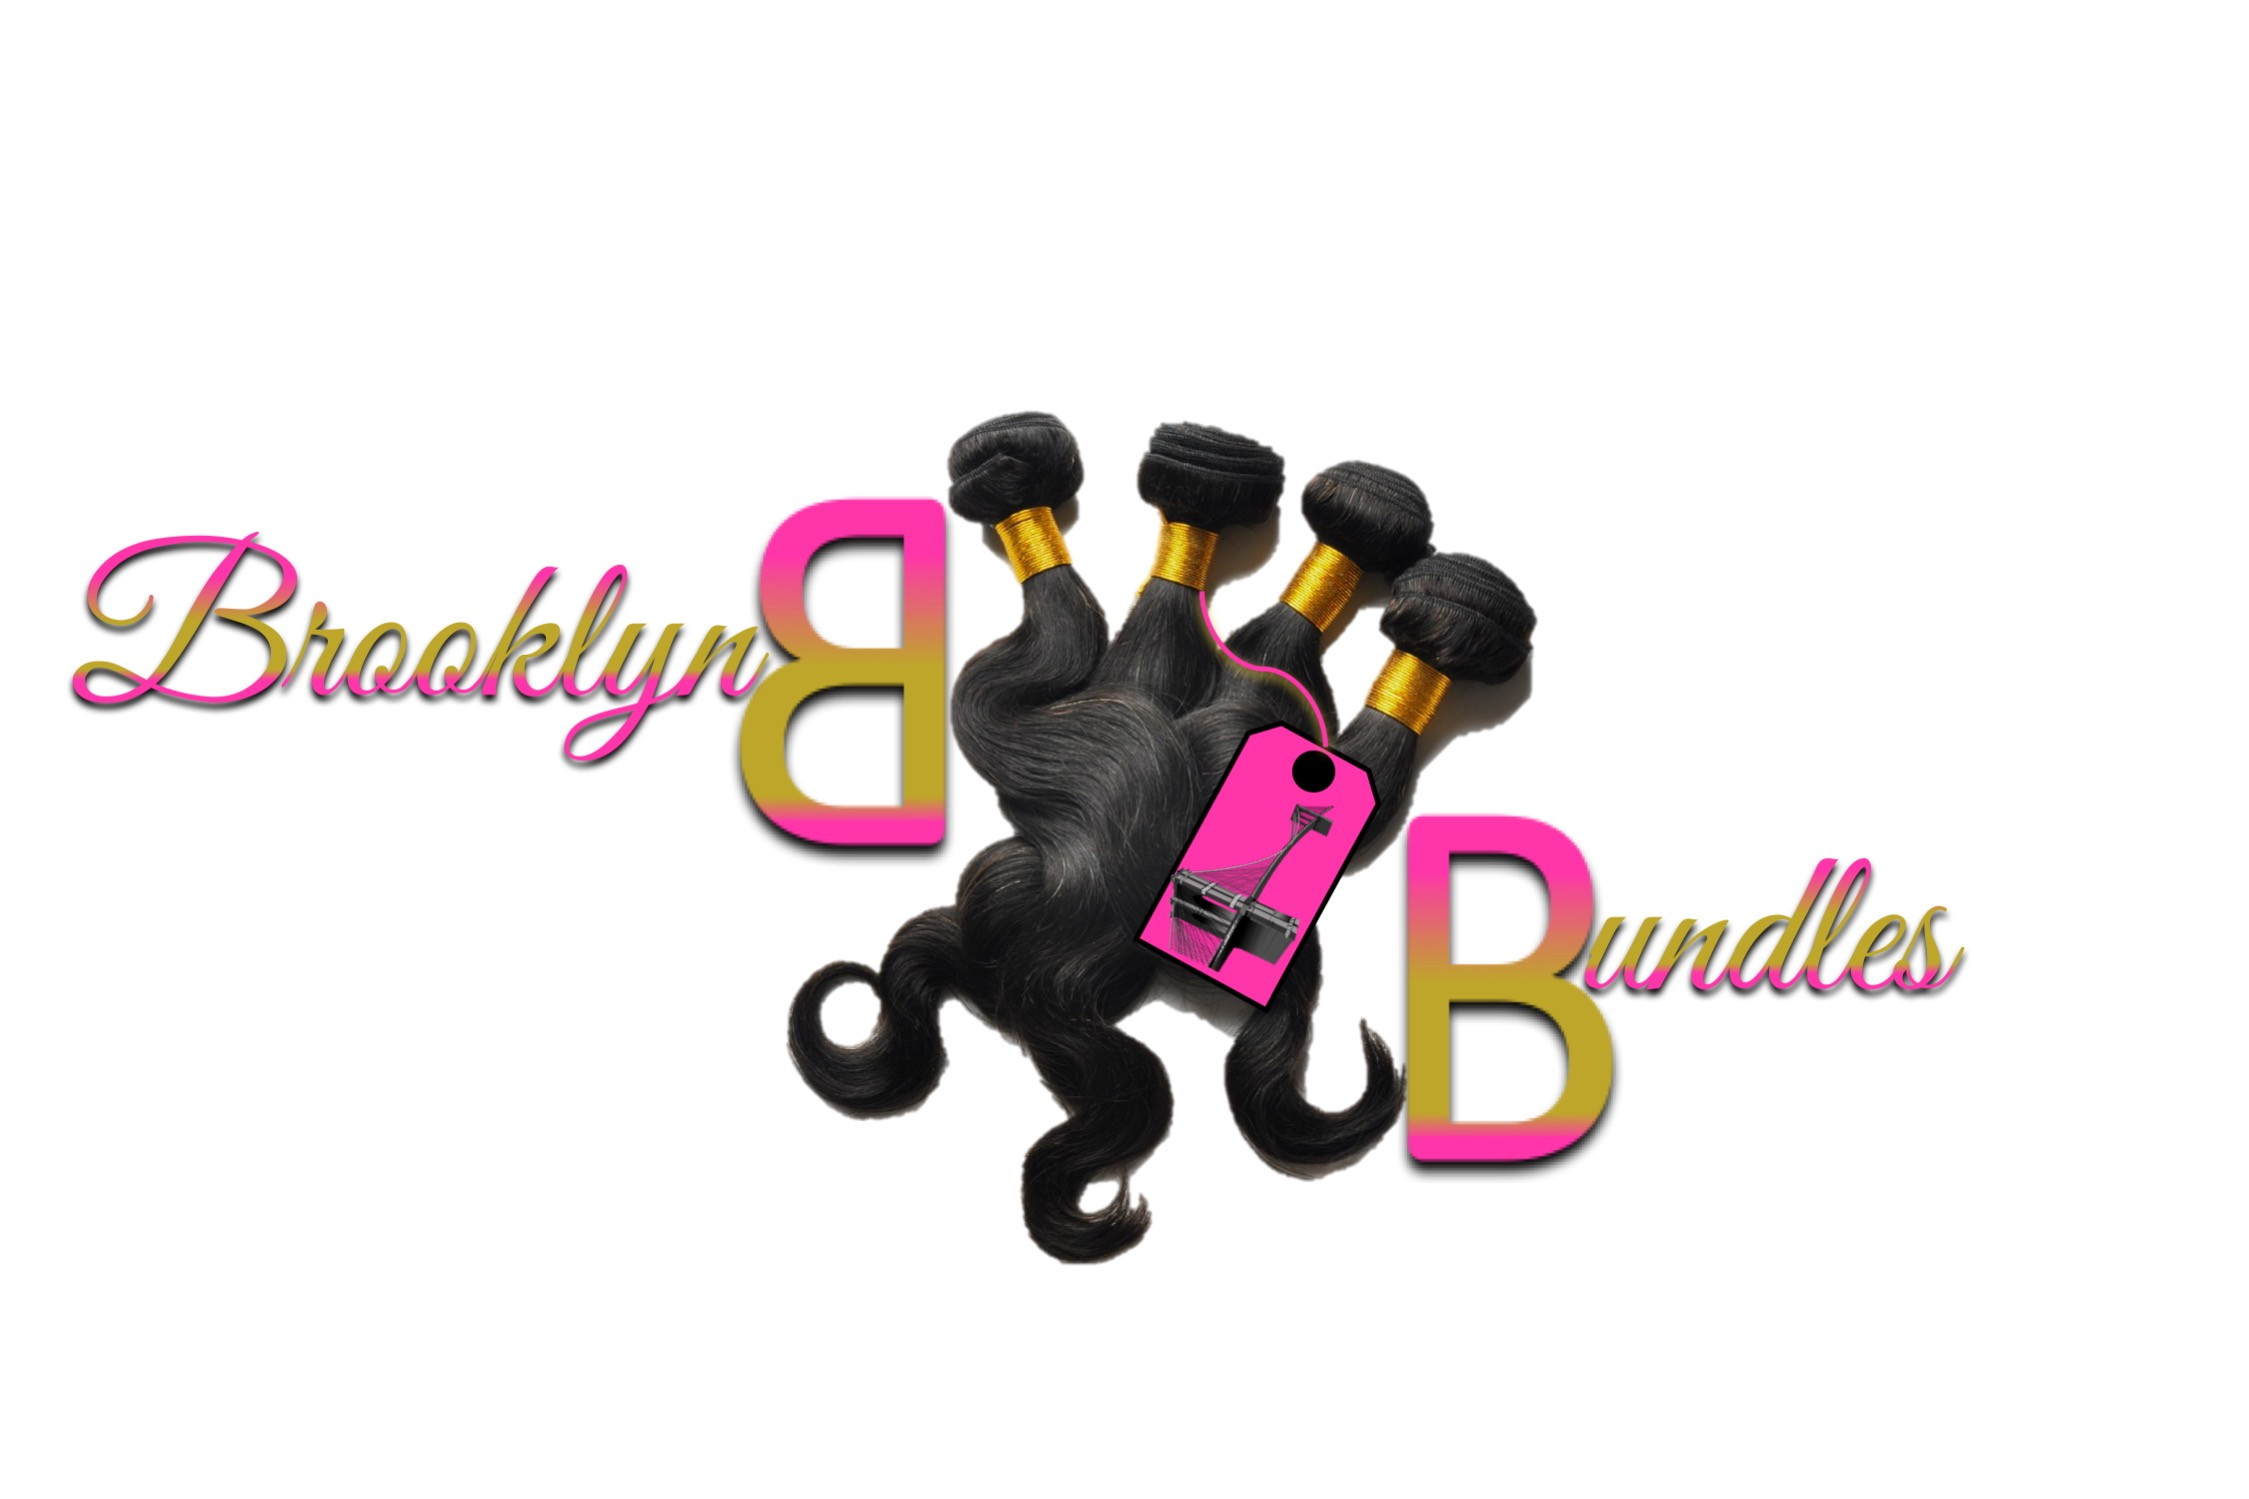 Brooklyn Bundles Final Logo.jpg